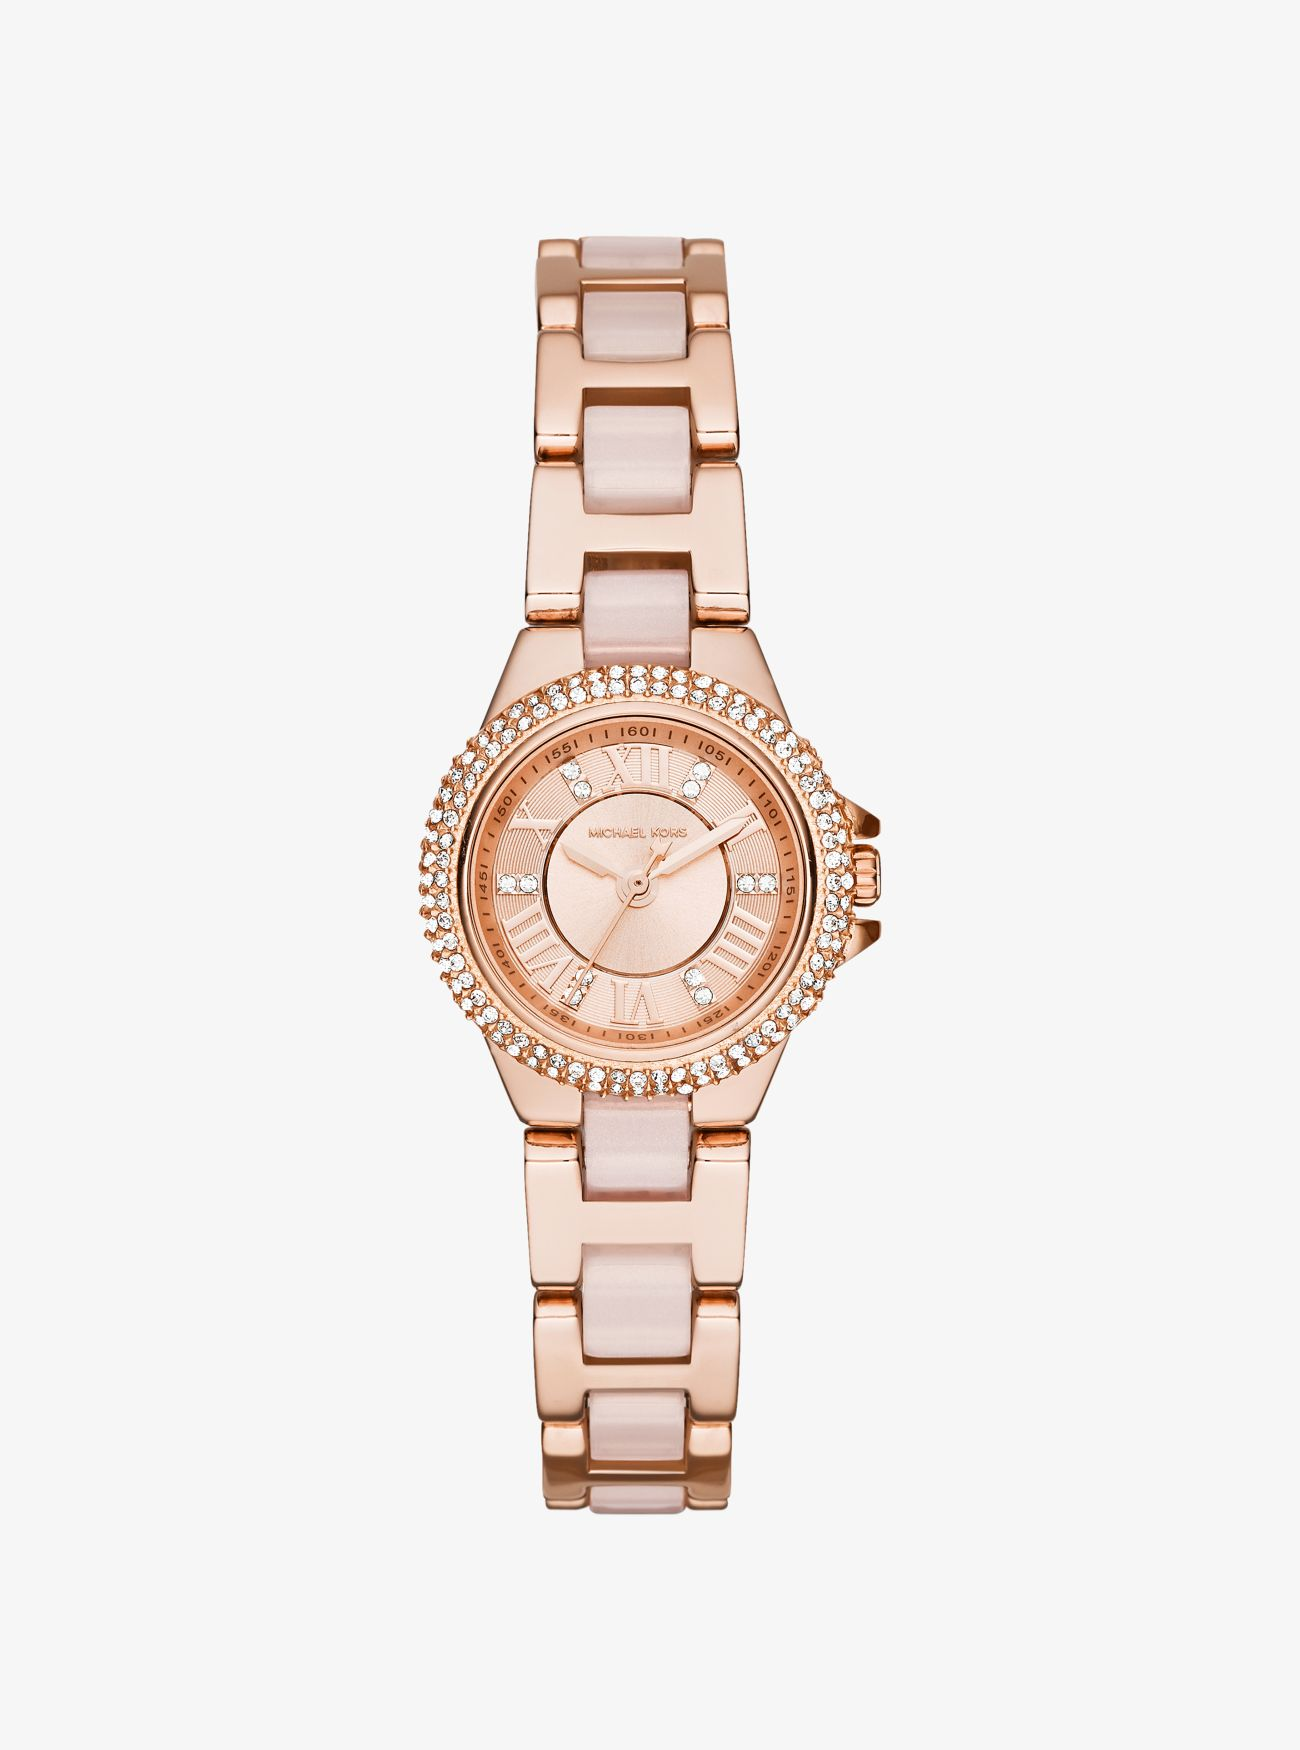 einzigartig rose goldene michael kors uhr schmuck website. Black Bedroom Furniture Sets. Home Design Ideas